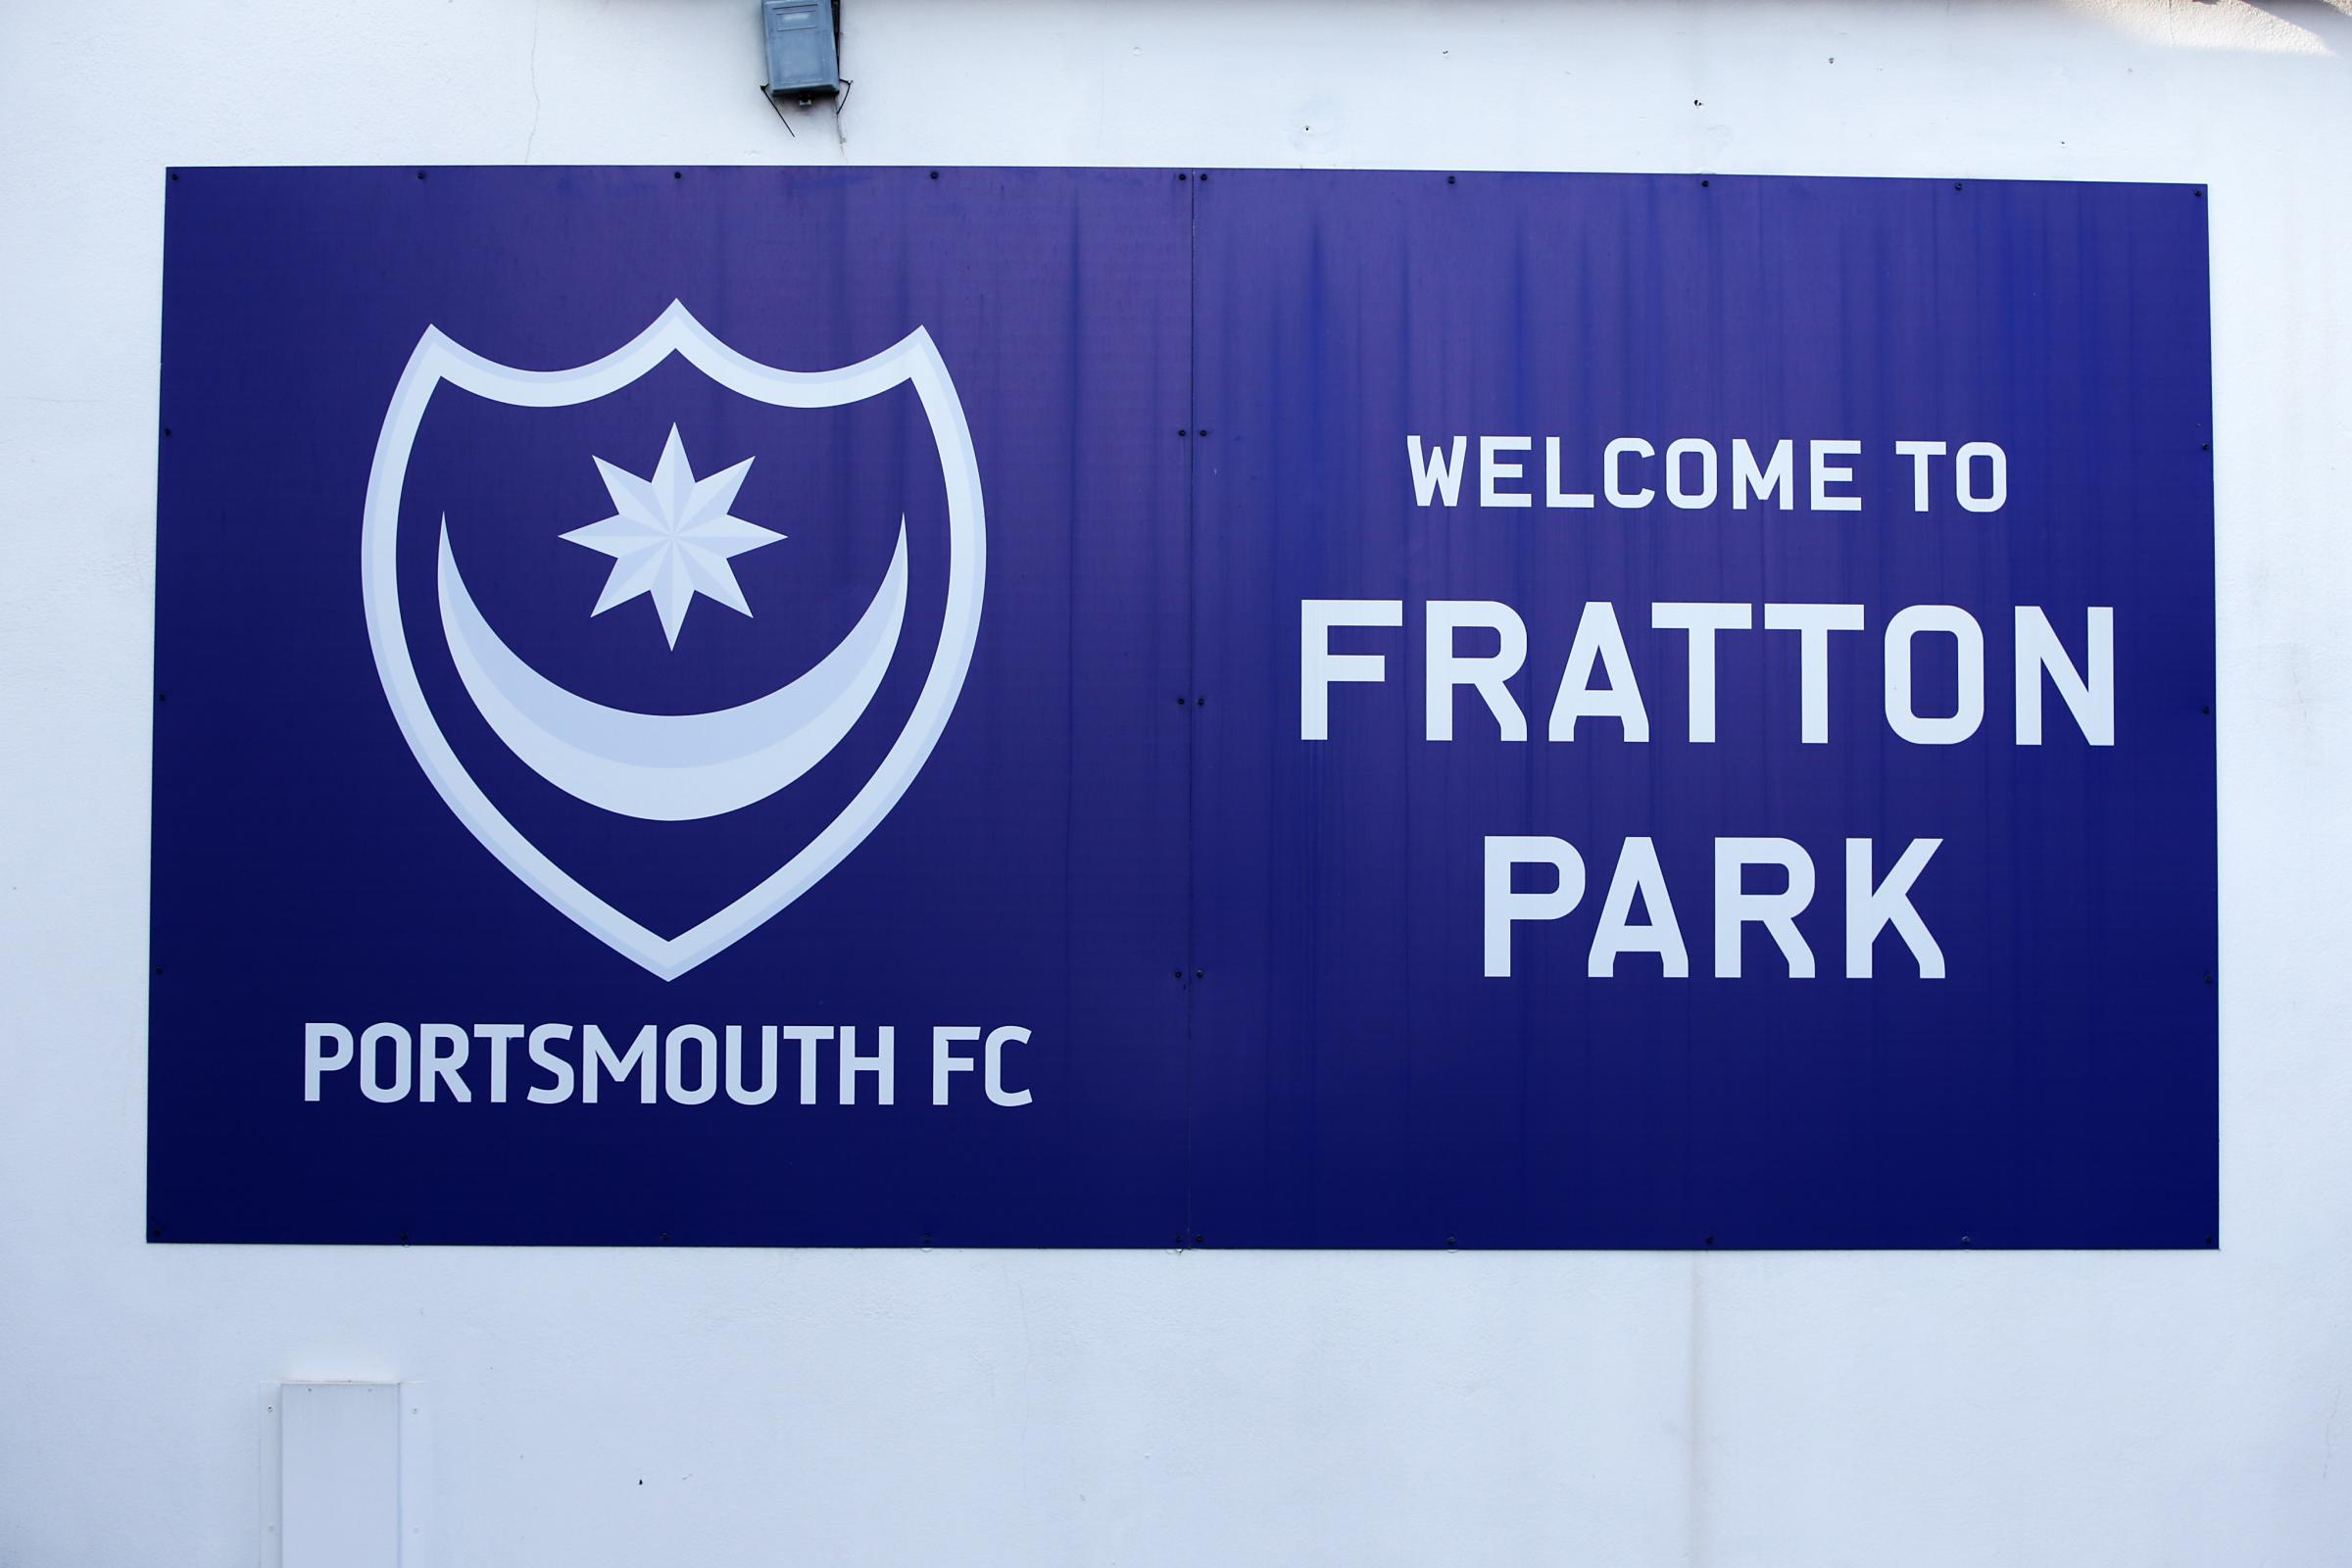 Police have made an arrest after threats were made to kill spectators at Fratton Park